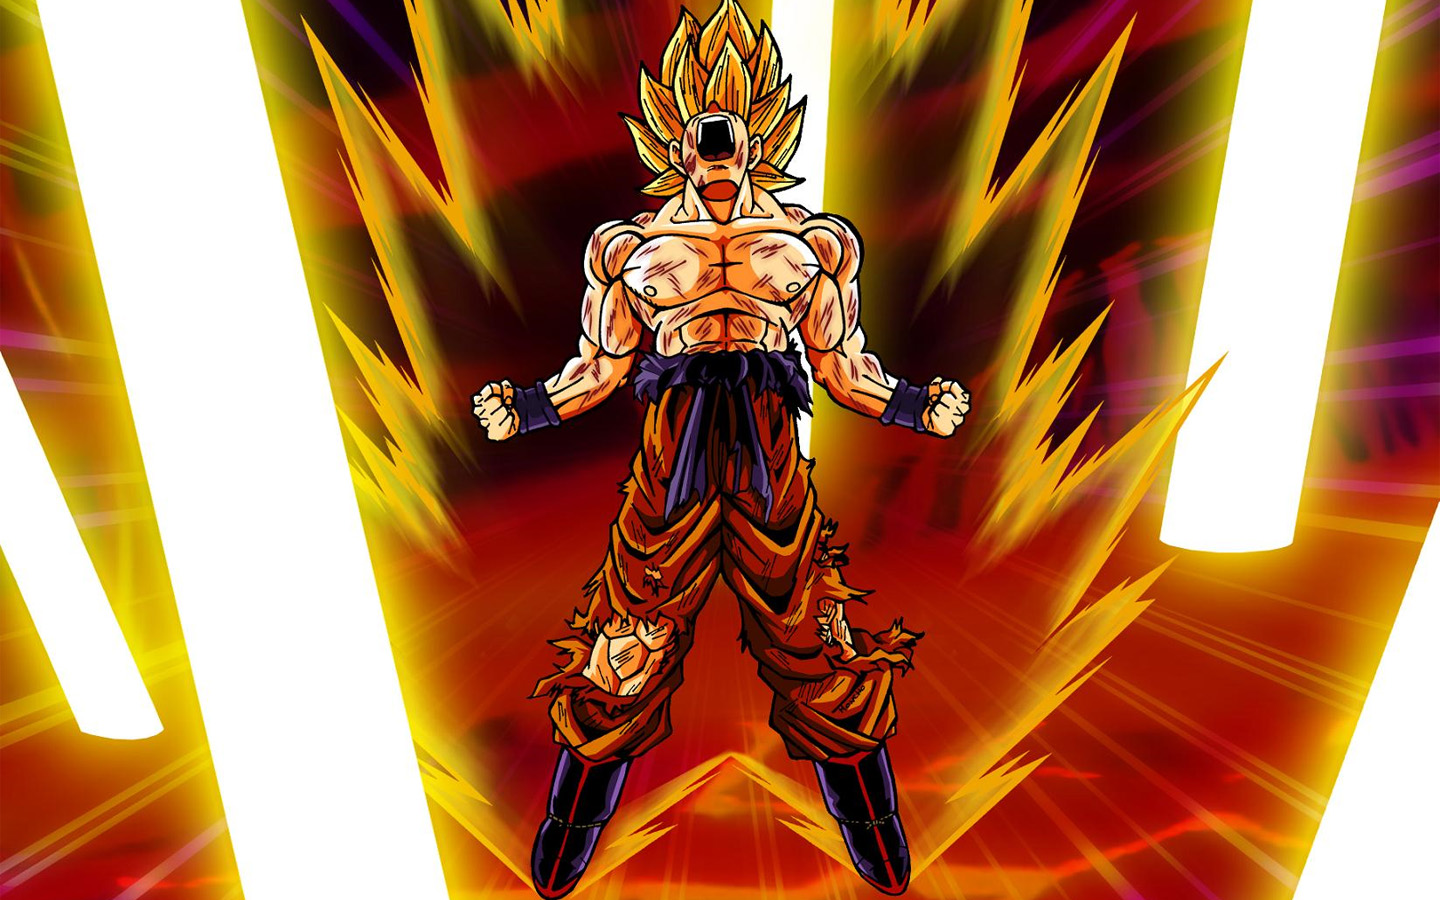 Dragon Ball HD & Widescreen Wallpaper 0.32021974869411